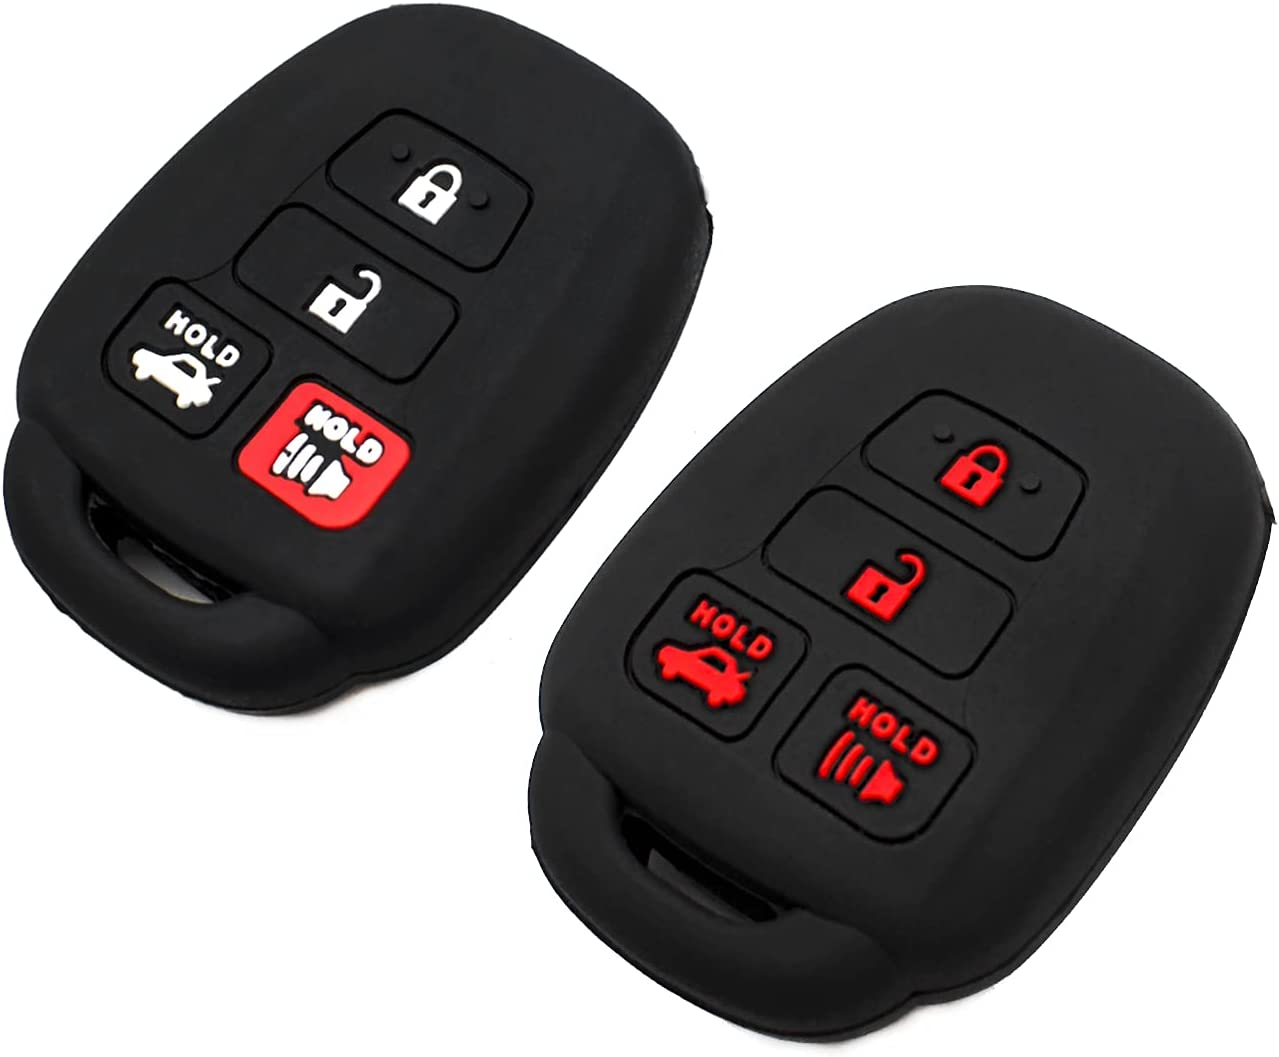 EYANBIS Silicone Key Fob Cover Fit for Toyota Camry SE LE Avalon Corolla RAV4 Venza Highlander Sequoia Scion HYQ12BDM | Car Accessories | Remote Key Protection Case - Black & Black/Red